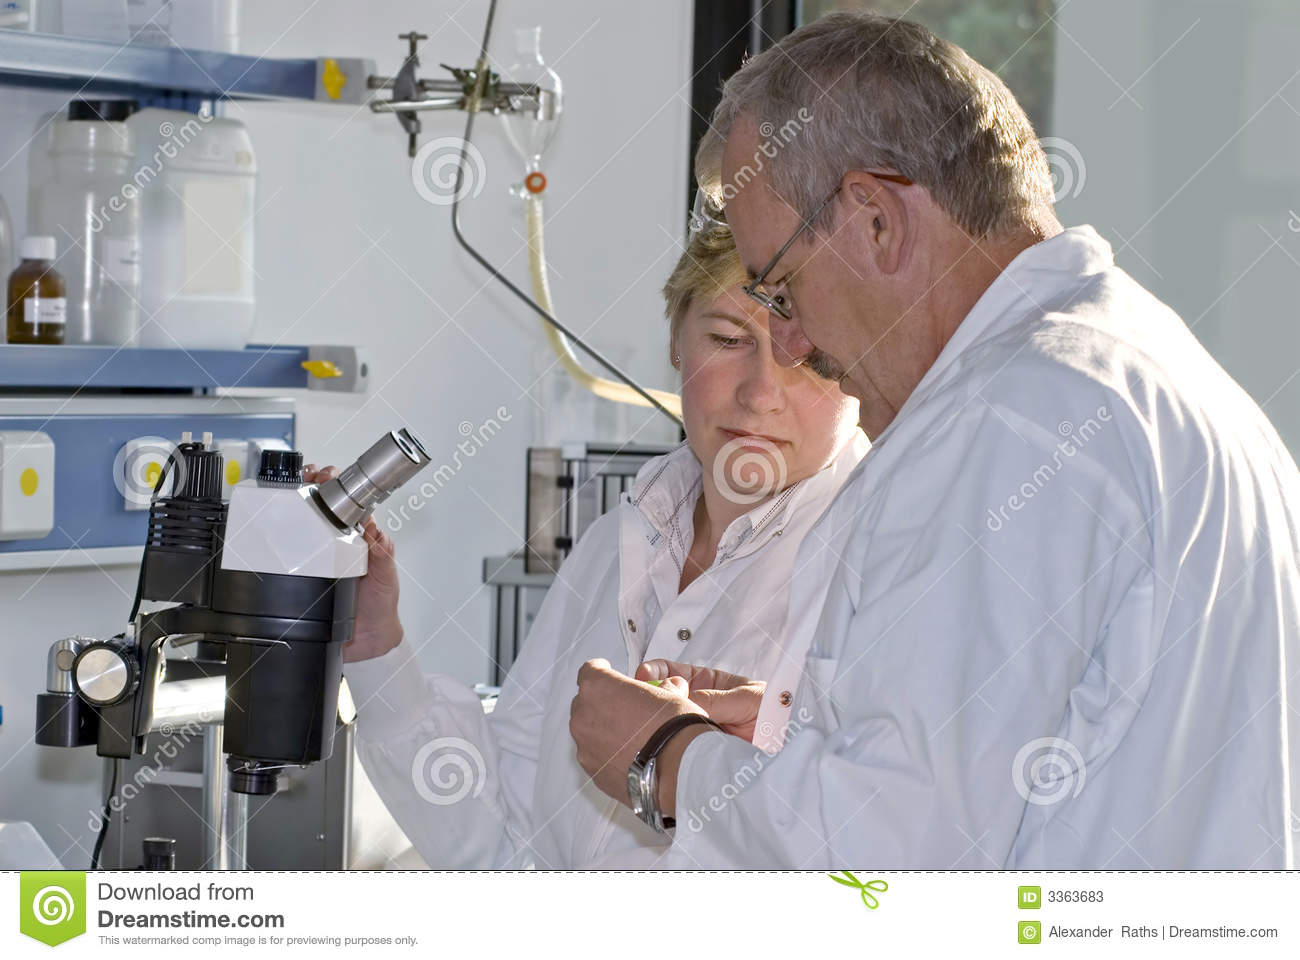 Two science technicians